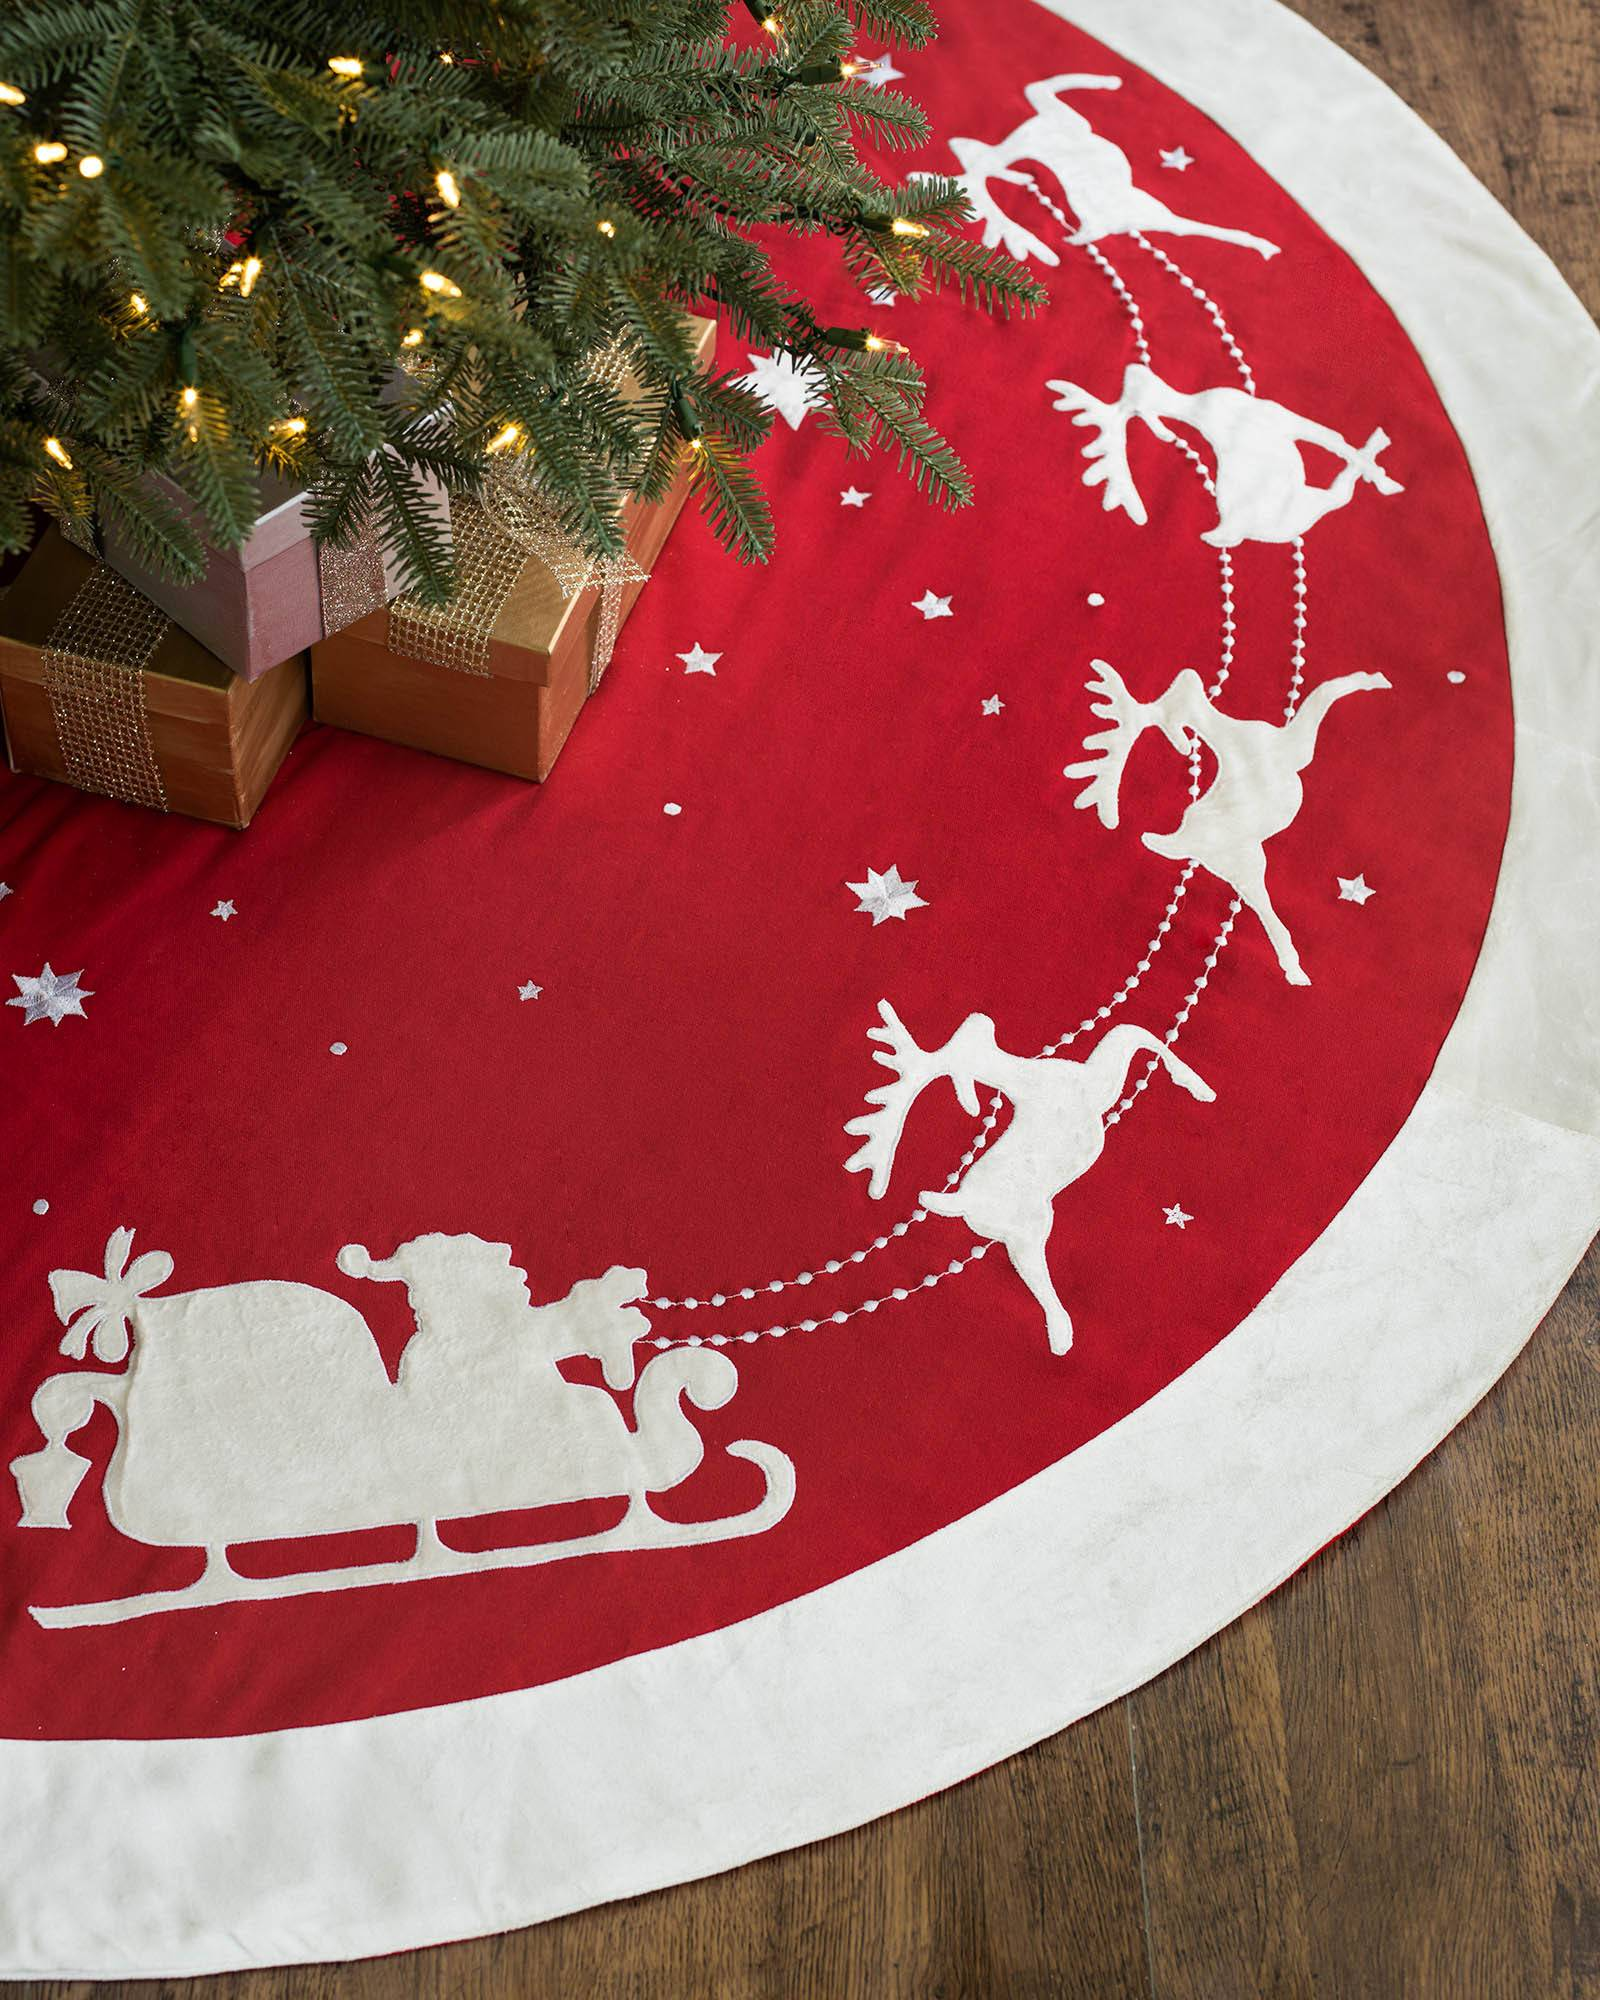 dashing through the snow tree skirt main - Christmas Tree Skirts